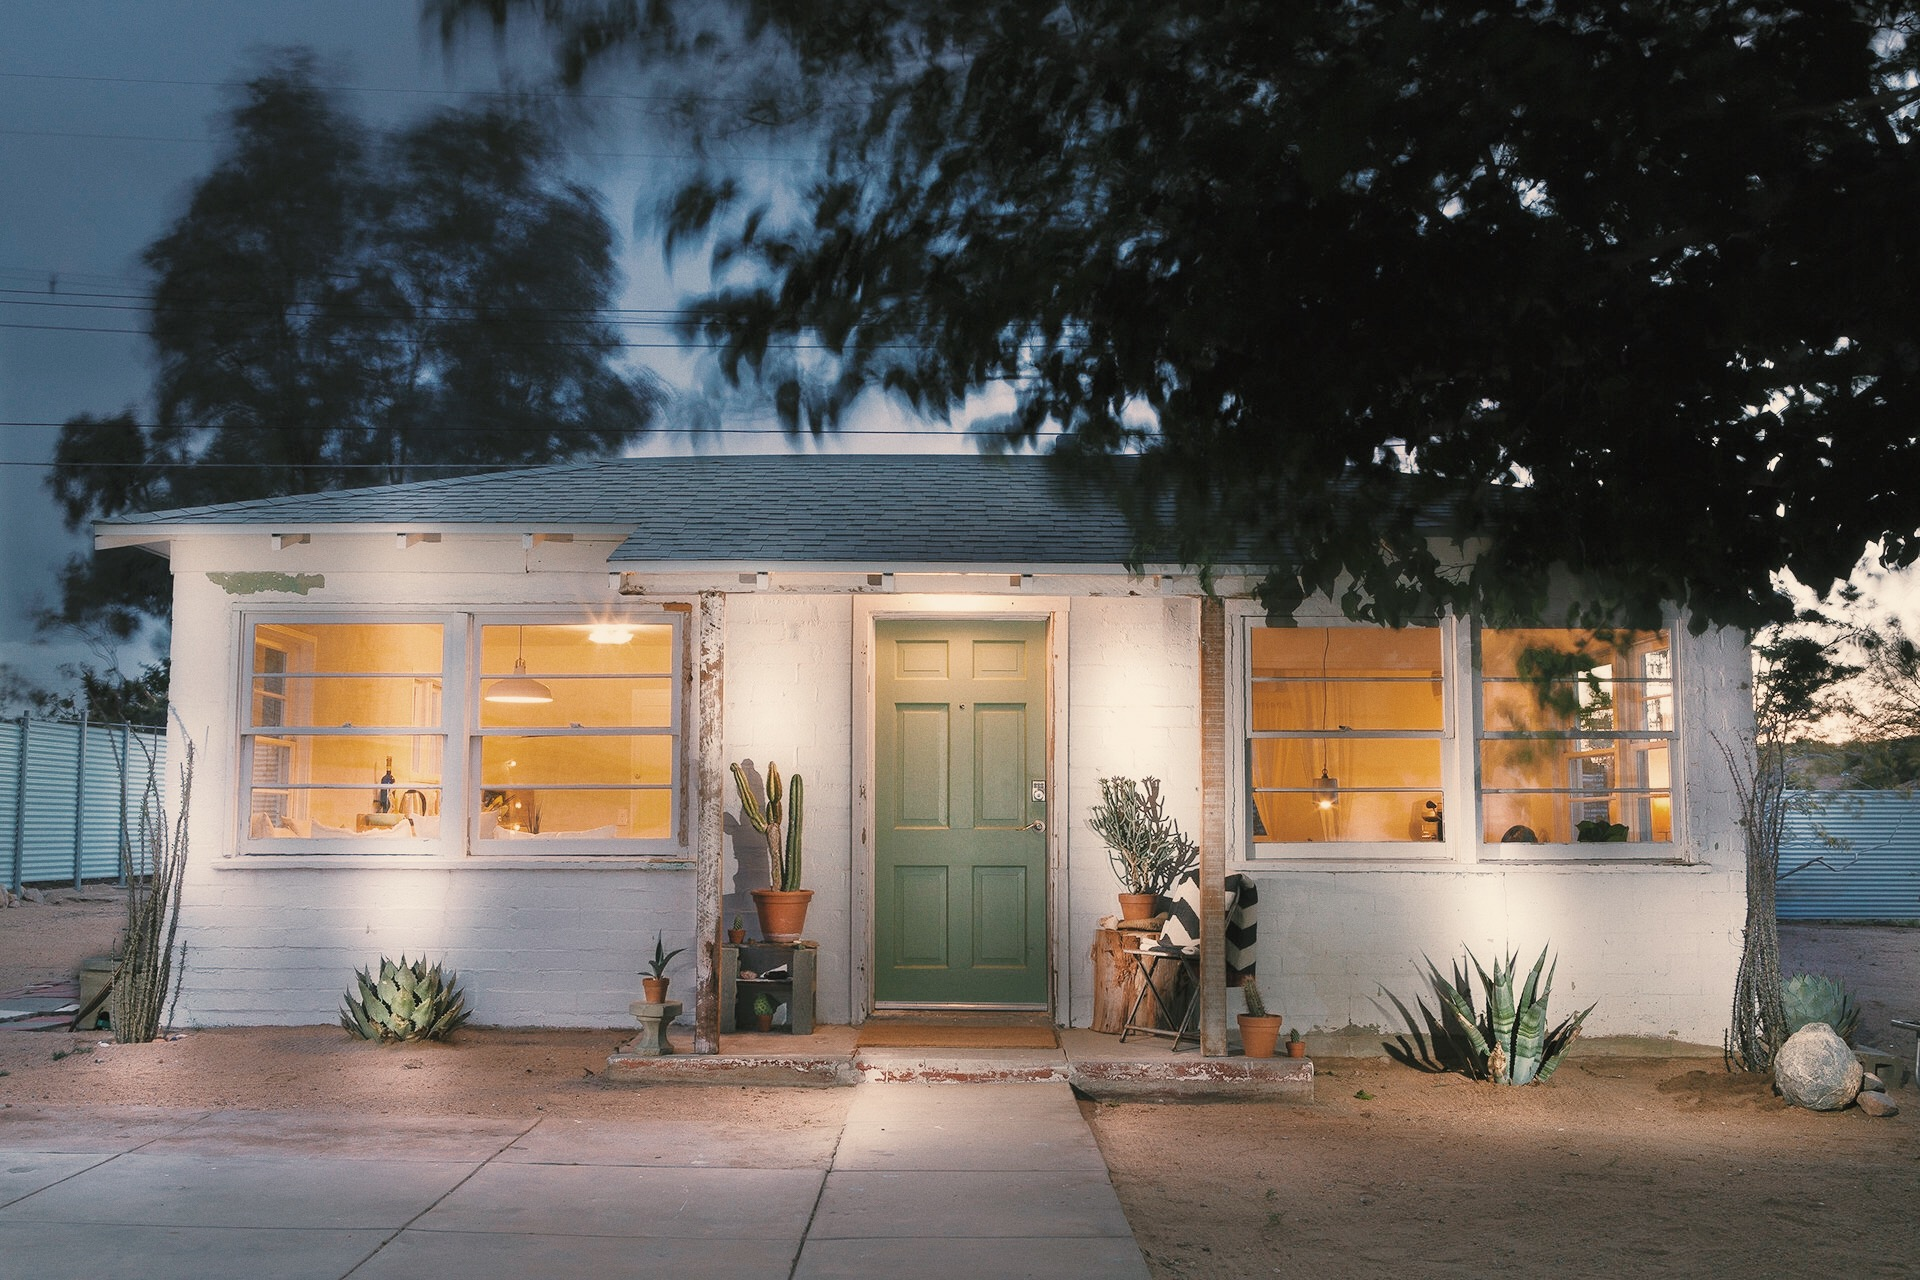 jt villager - One of the original 1947 homes in the heart of Joshua Tree Village with retro, modern and local artistic touches. Only 10 minutes from Joshua Tree National Park, walkable to the saloon, coffee, clothing and art boutiques.BOOK HERE